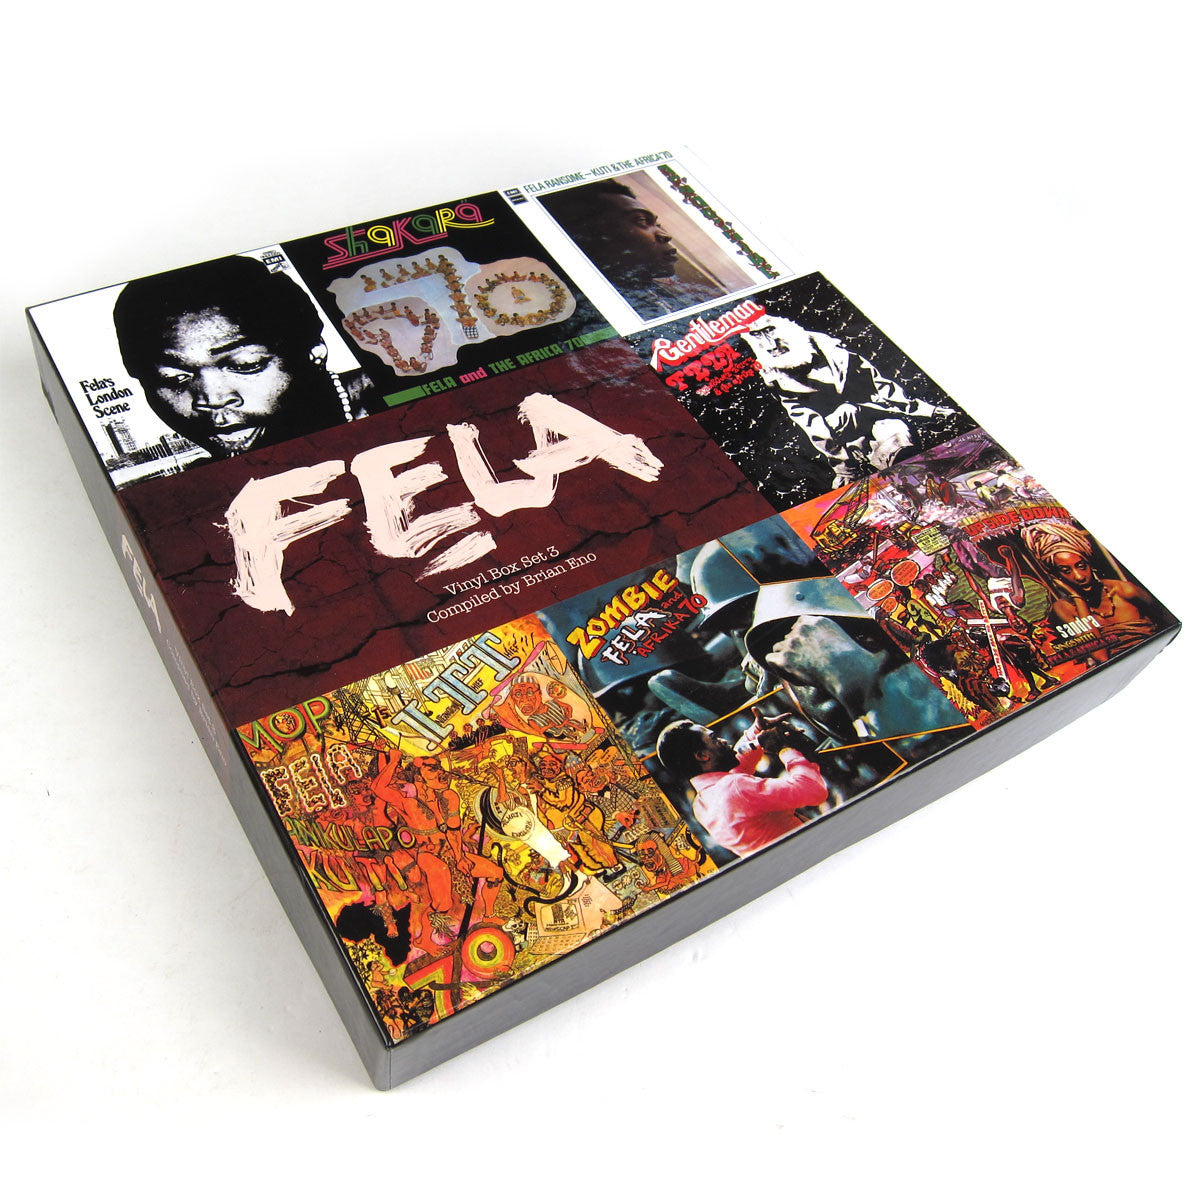 Fela Kuti: Vinyl Box Set 3 Compiled By Brian Eno (Booklet, Poster, 180g) Vinyl 7LP box